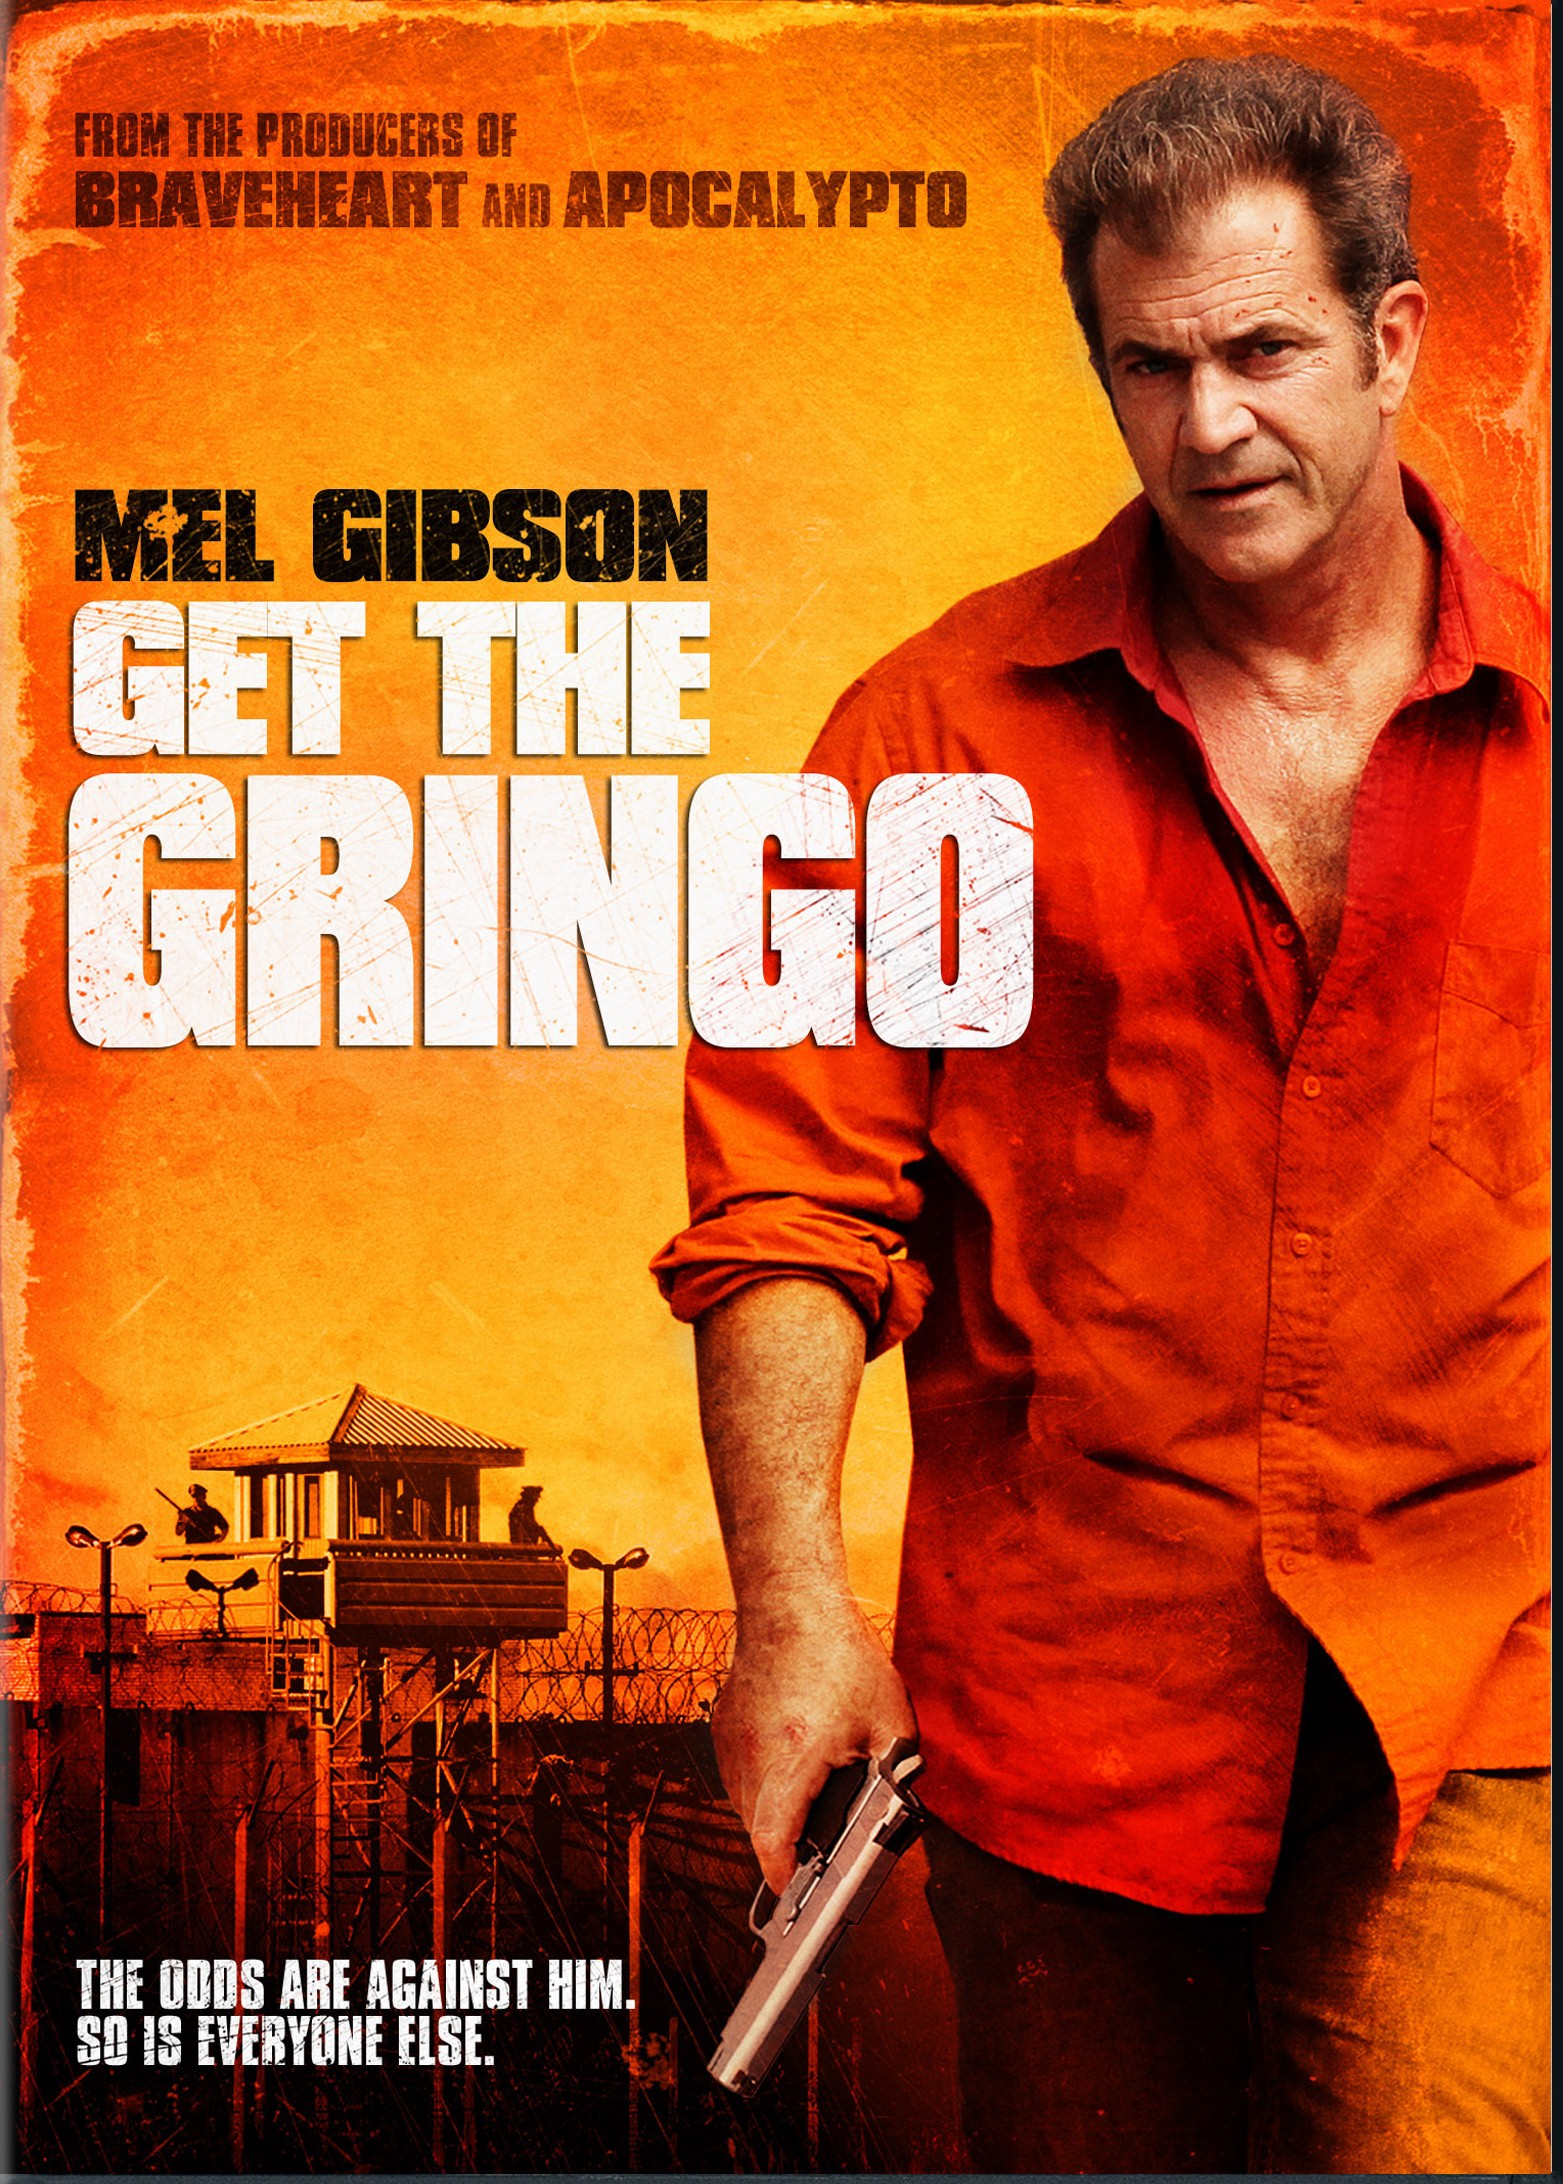 mel gibson reel to real i had not seen a new mel gibson film since he went off the deep end a few years ago but because i was such a big fan of his